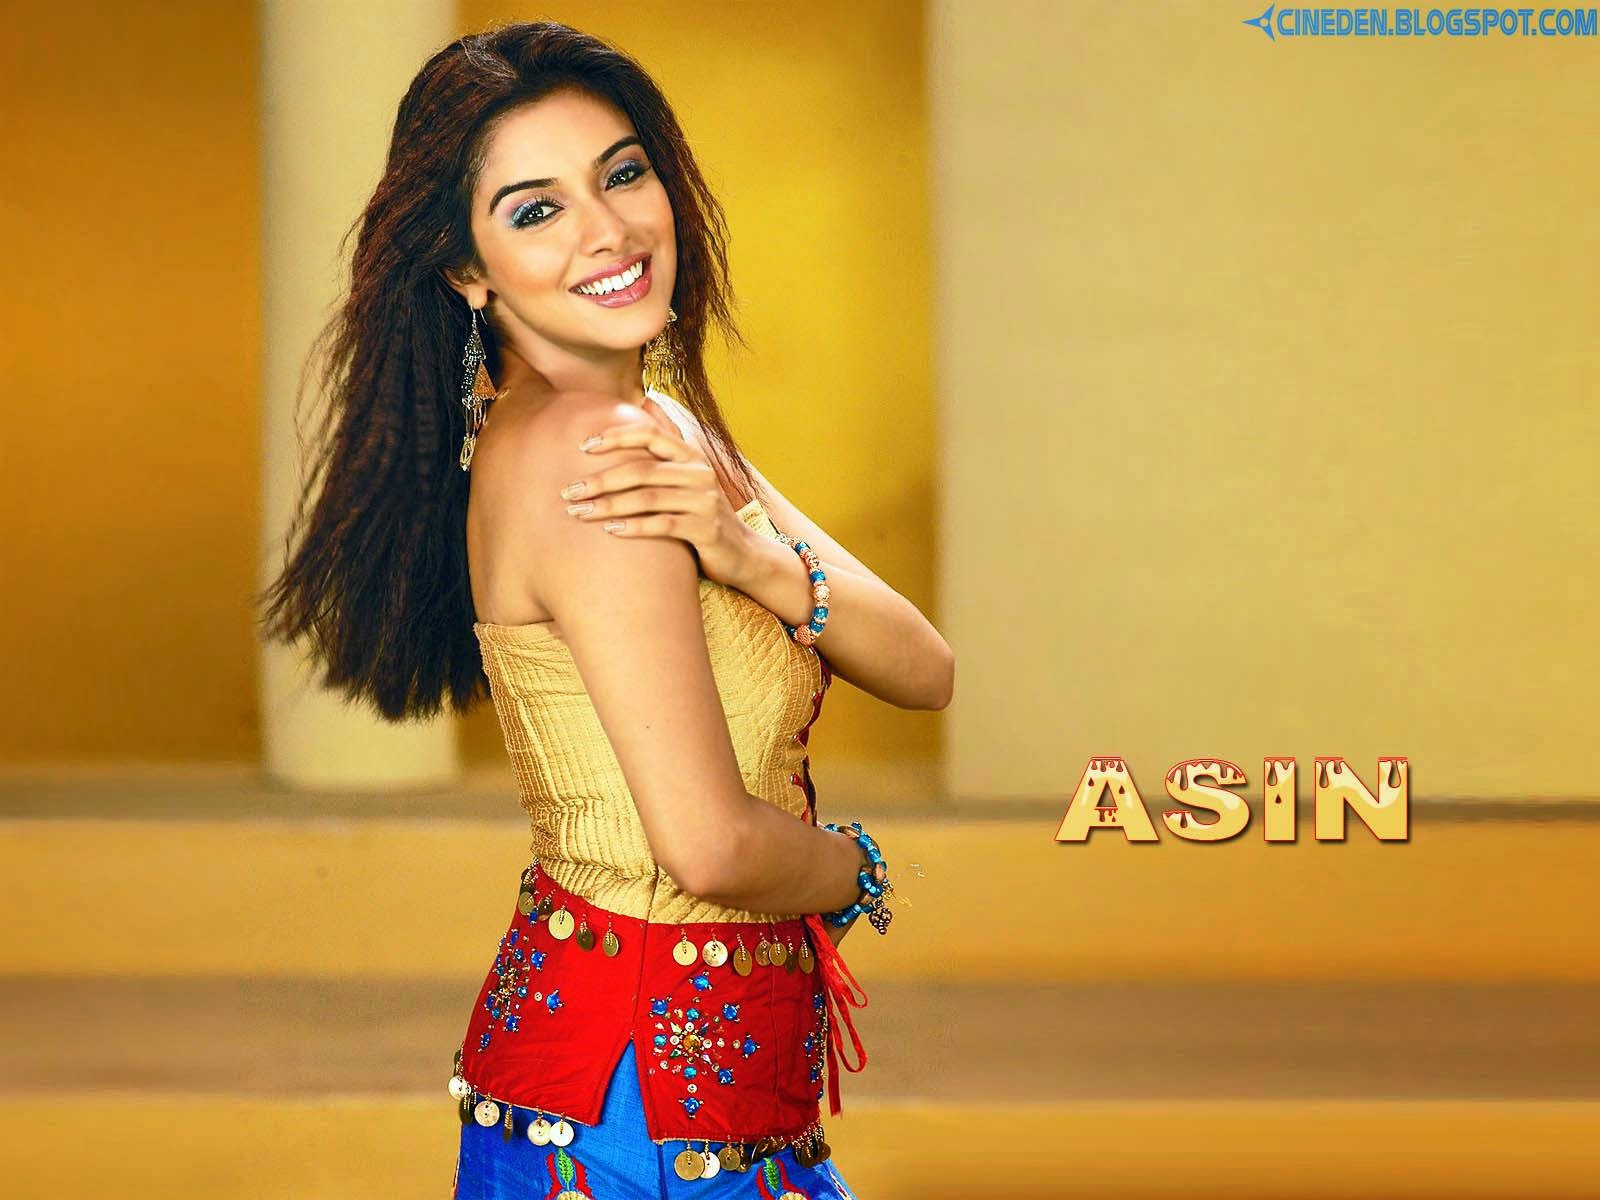 Asin all for women empowerment - CineDen